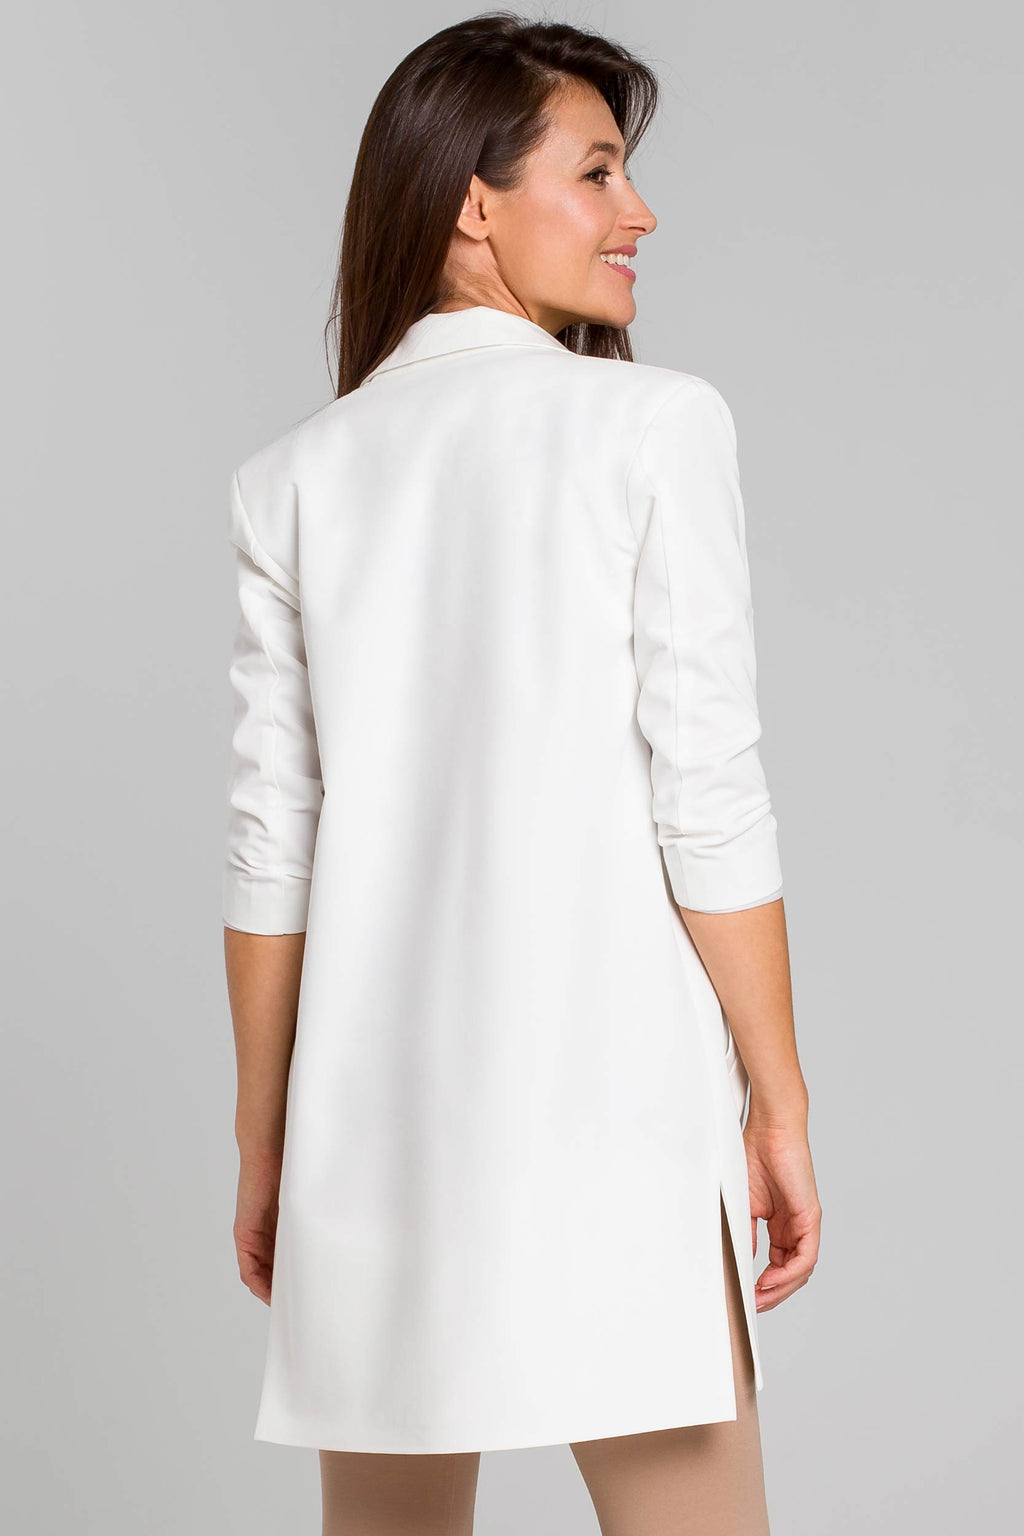 Ecru Long Blazer With Side Slits And 7/8 Sleeves - So Chic Boutique